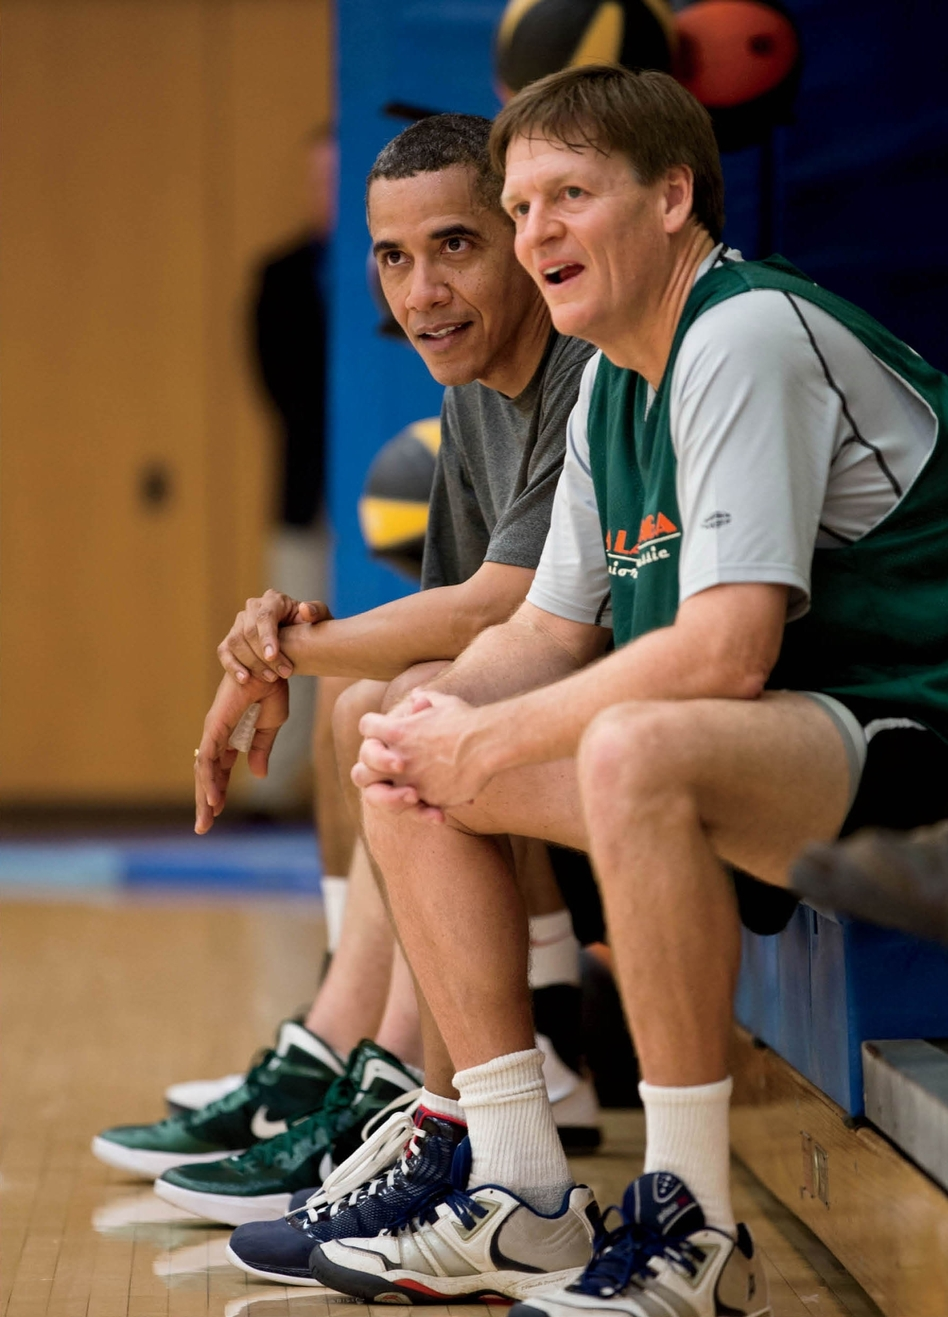 Contributing editor Michael Lewis played basketball with President Obama while working on a piece for <em>Vanity Fair.</em>